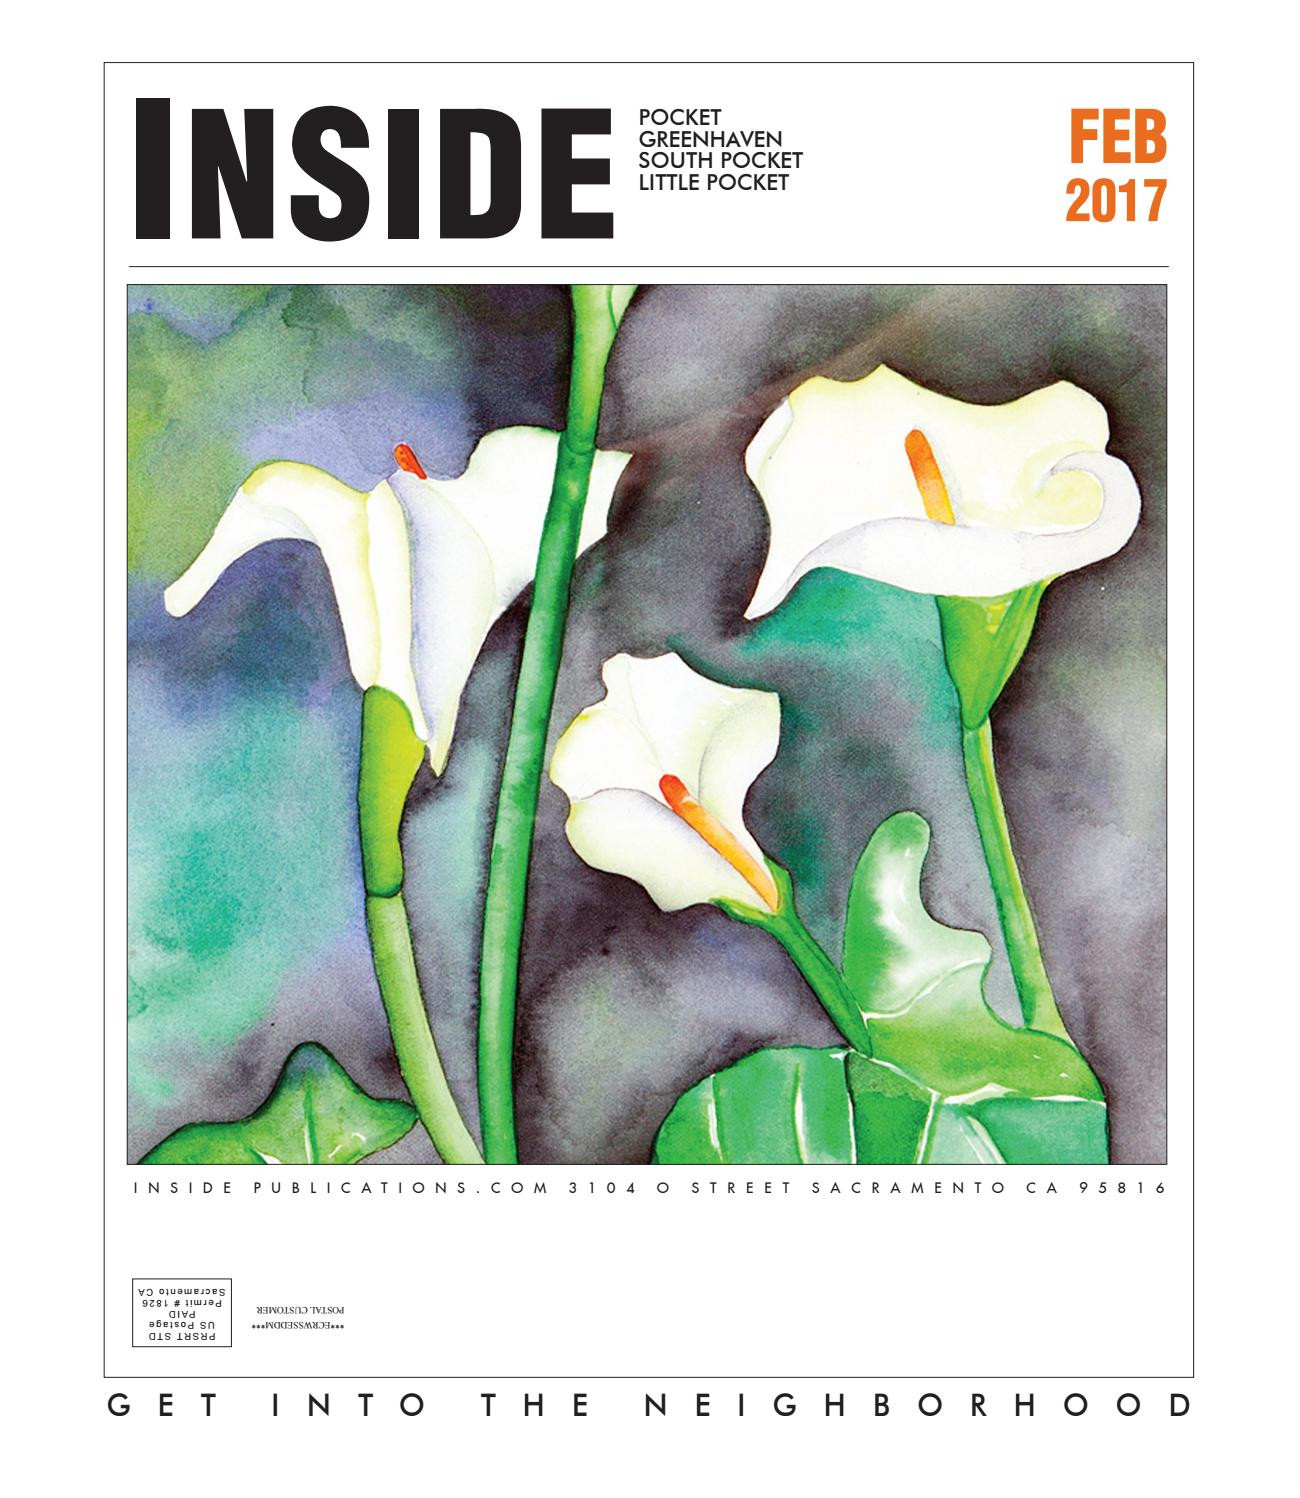 Flower Delivery Sacramento Awesome Inside Pocket Feb 2017 by Inside Publications issuu